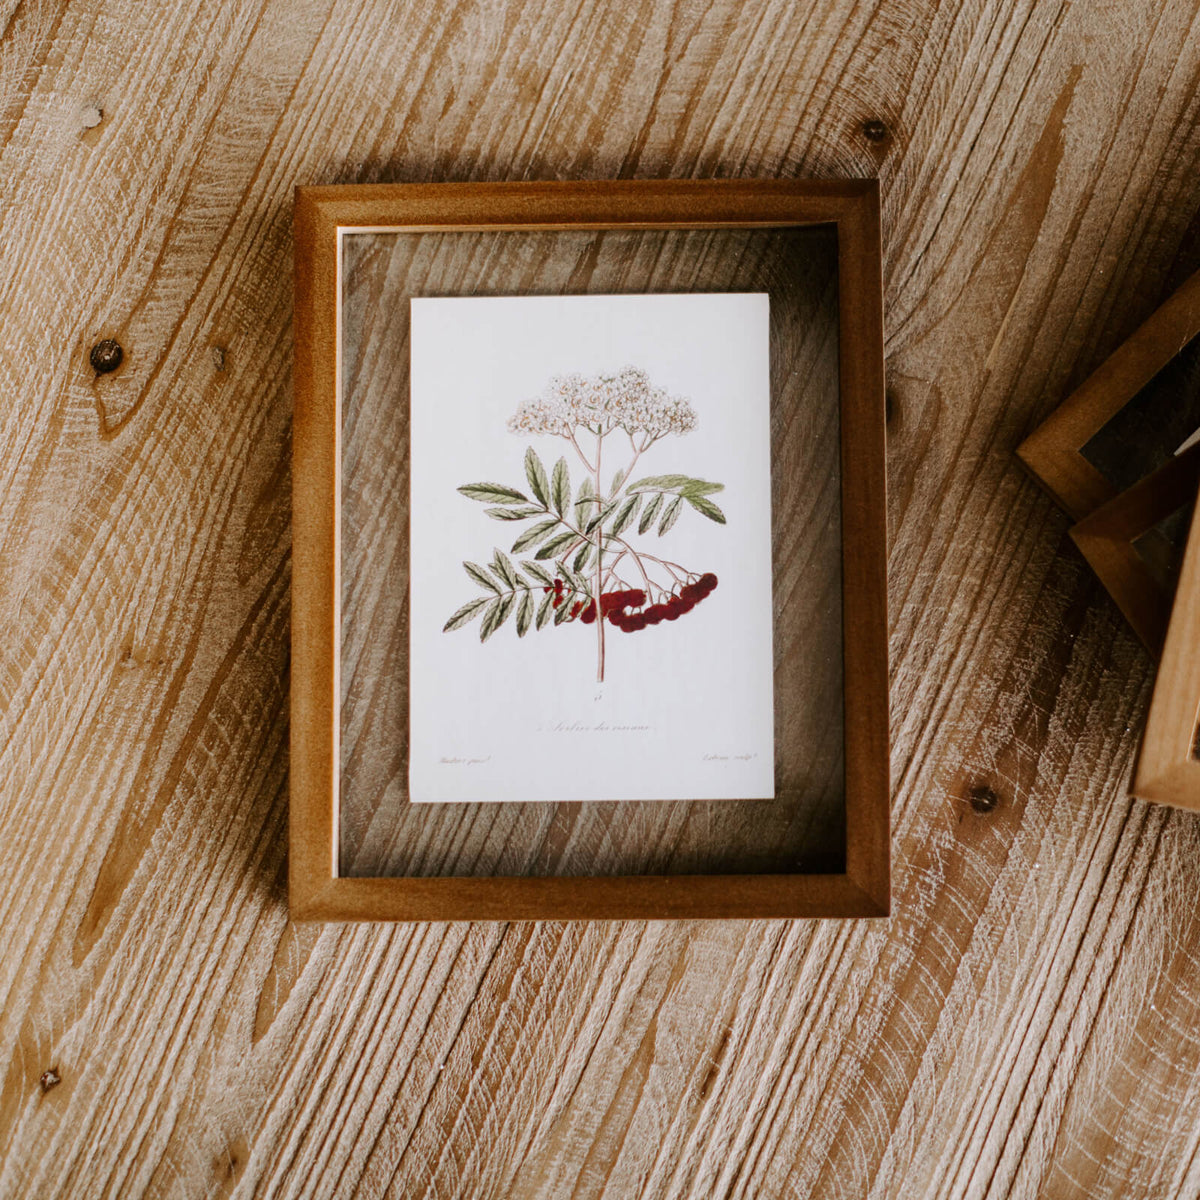 A framed botanical illustration of small white flowers, red berries and green leaves inside a wooden frame resting on a tabletop